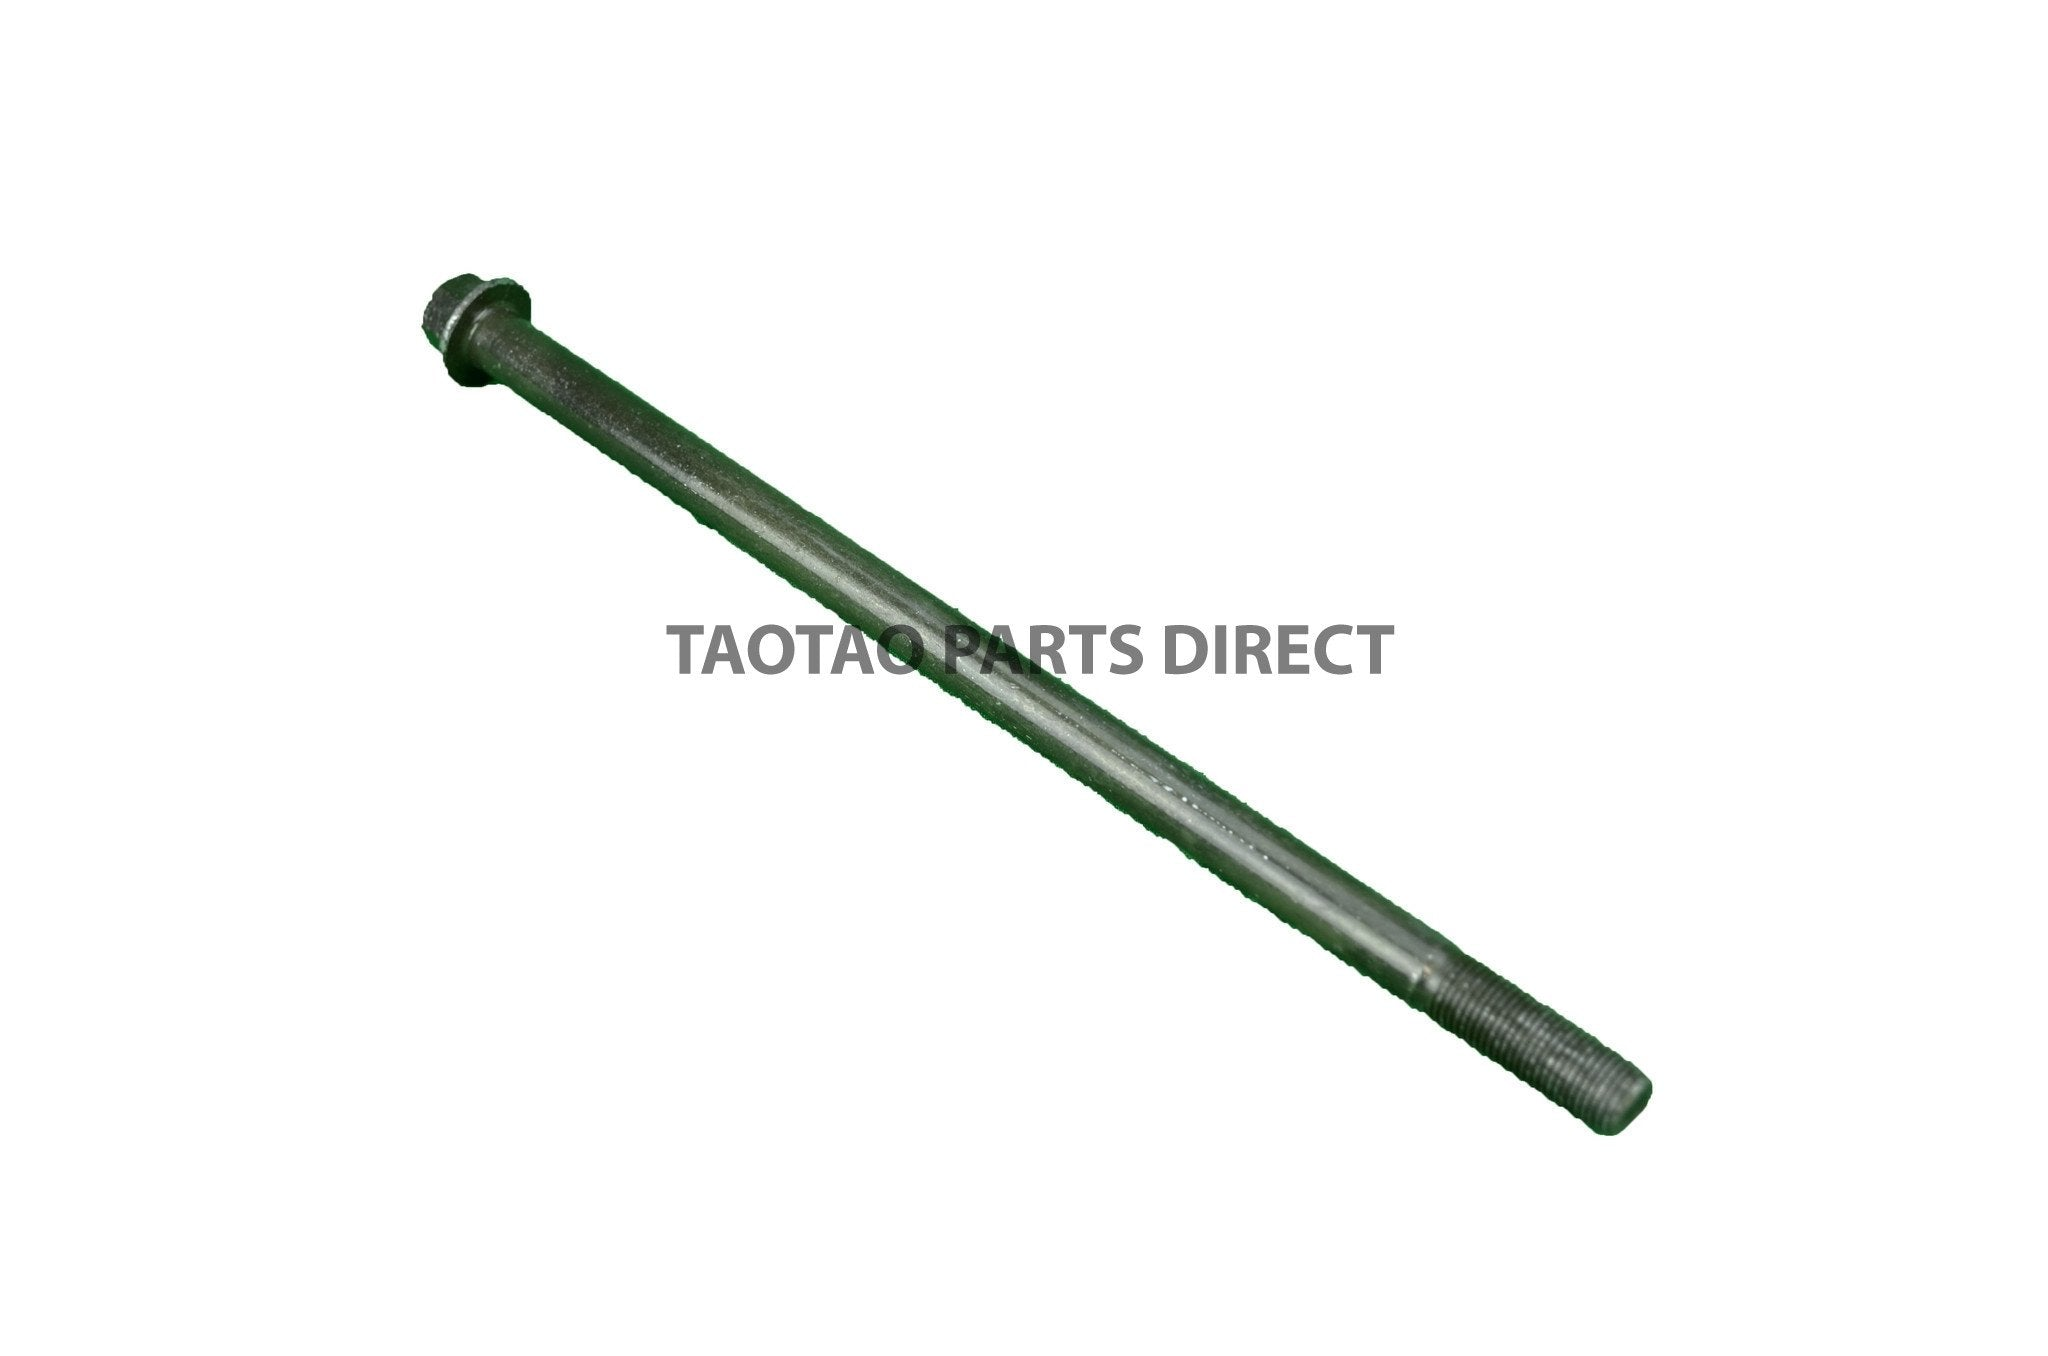 ATA110D Swing Arm Bolt - TaoTaoPartsDirect.com